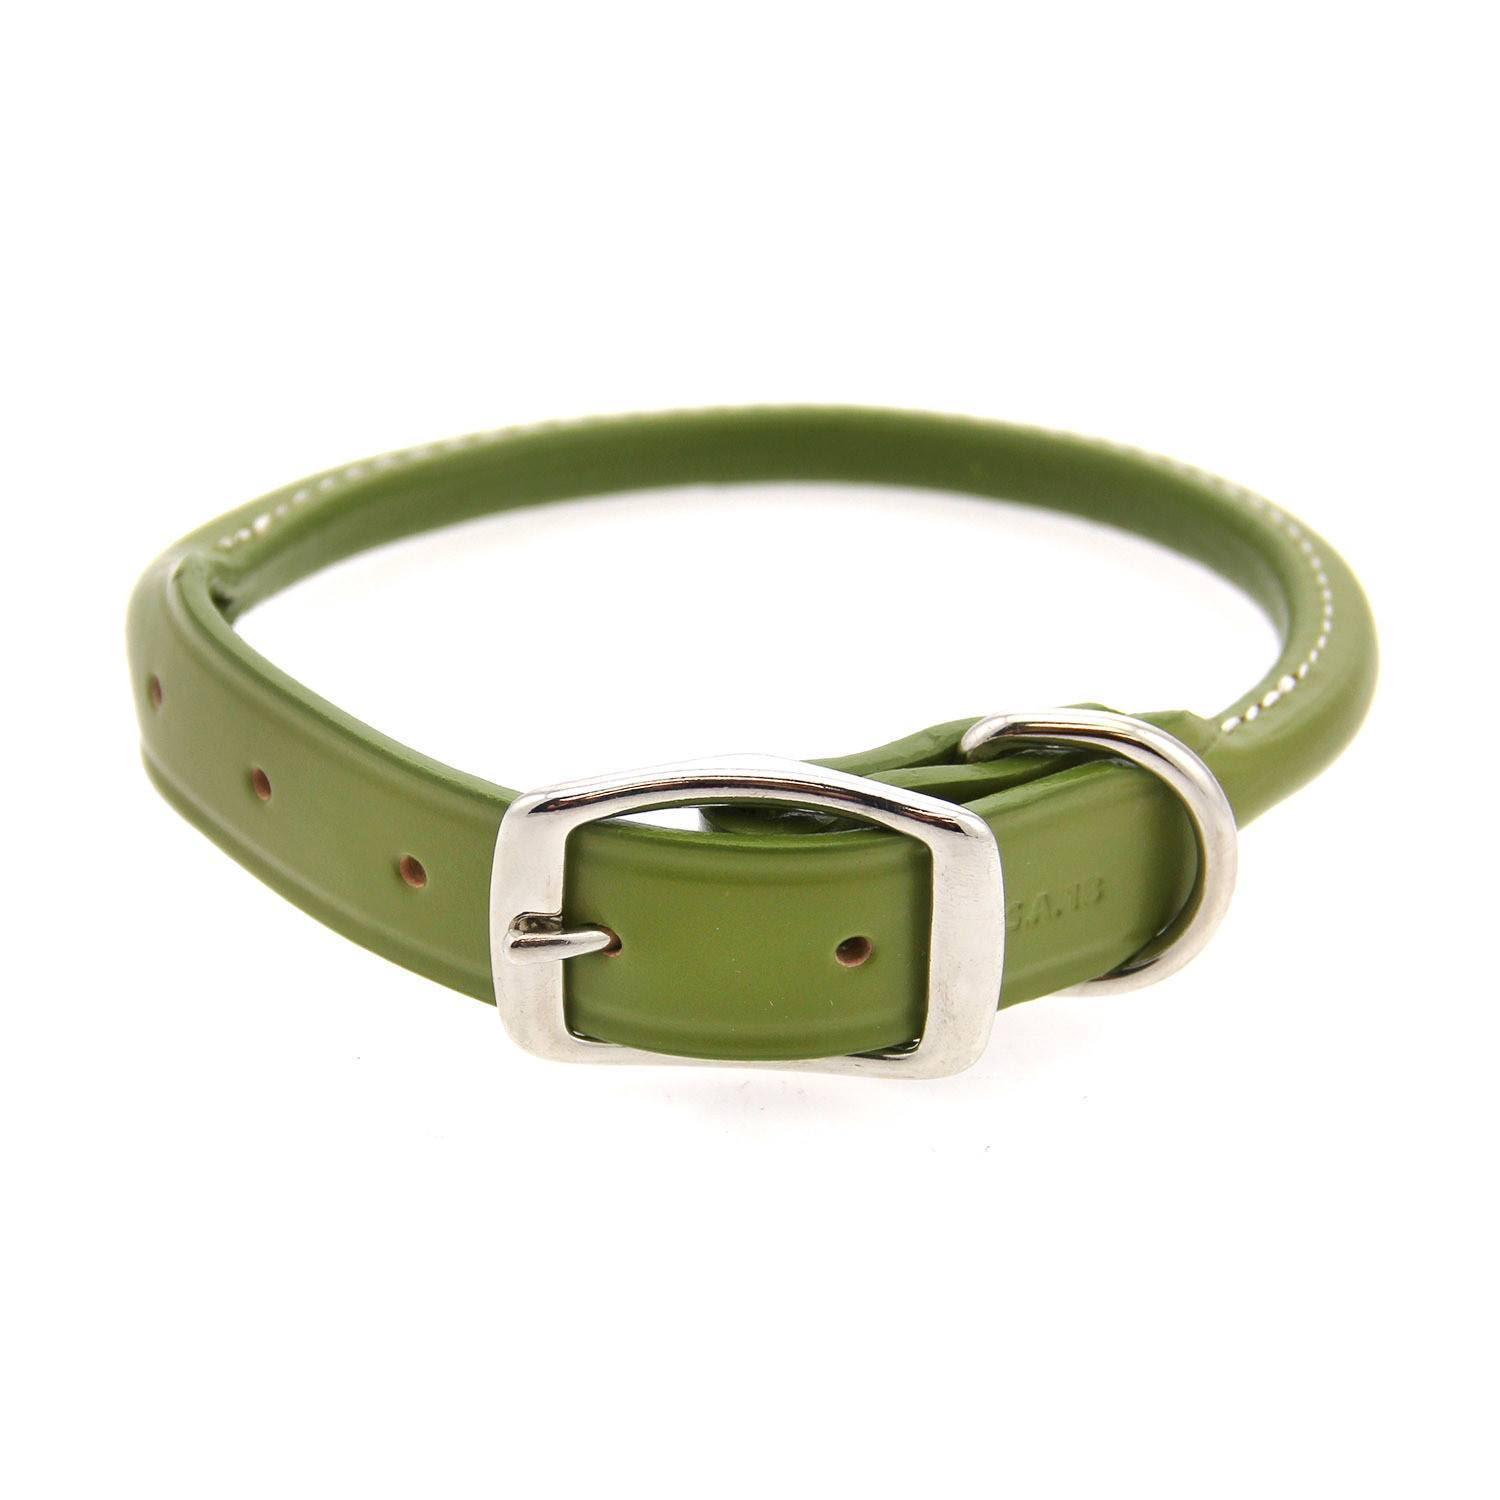 "Auburn Leathercrafters Round Leather Dog Collar - Green 22"" L x 1"" W"